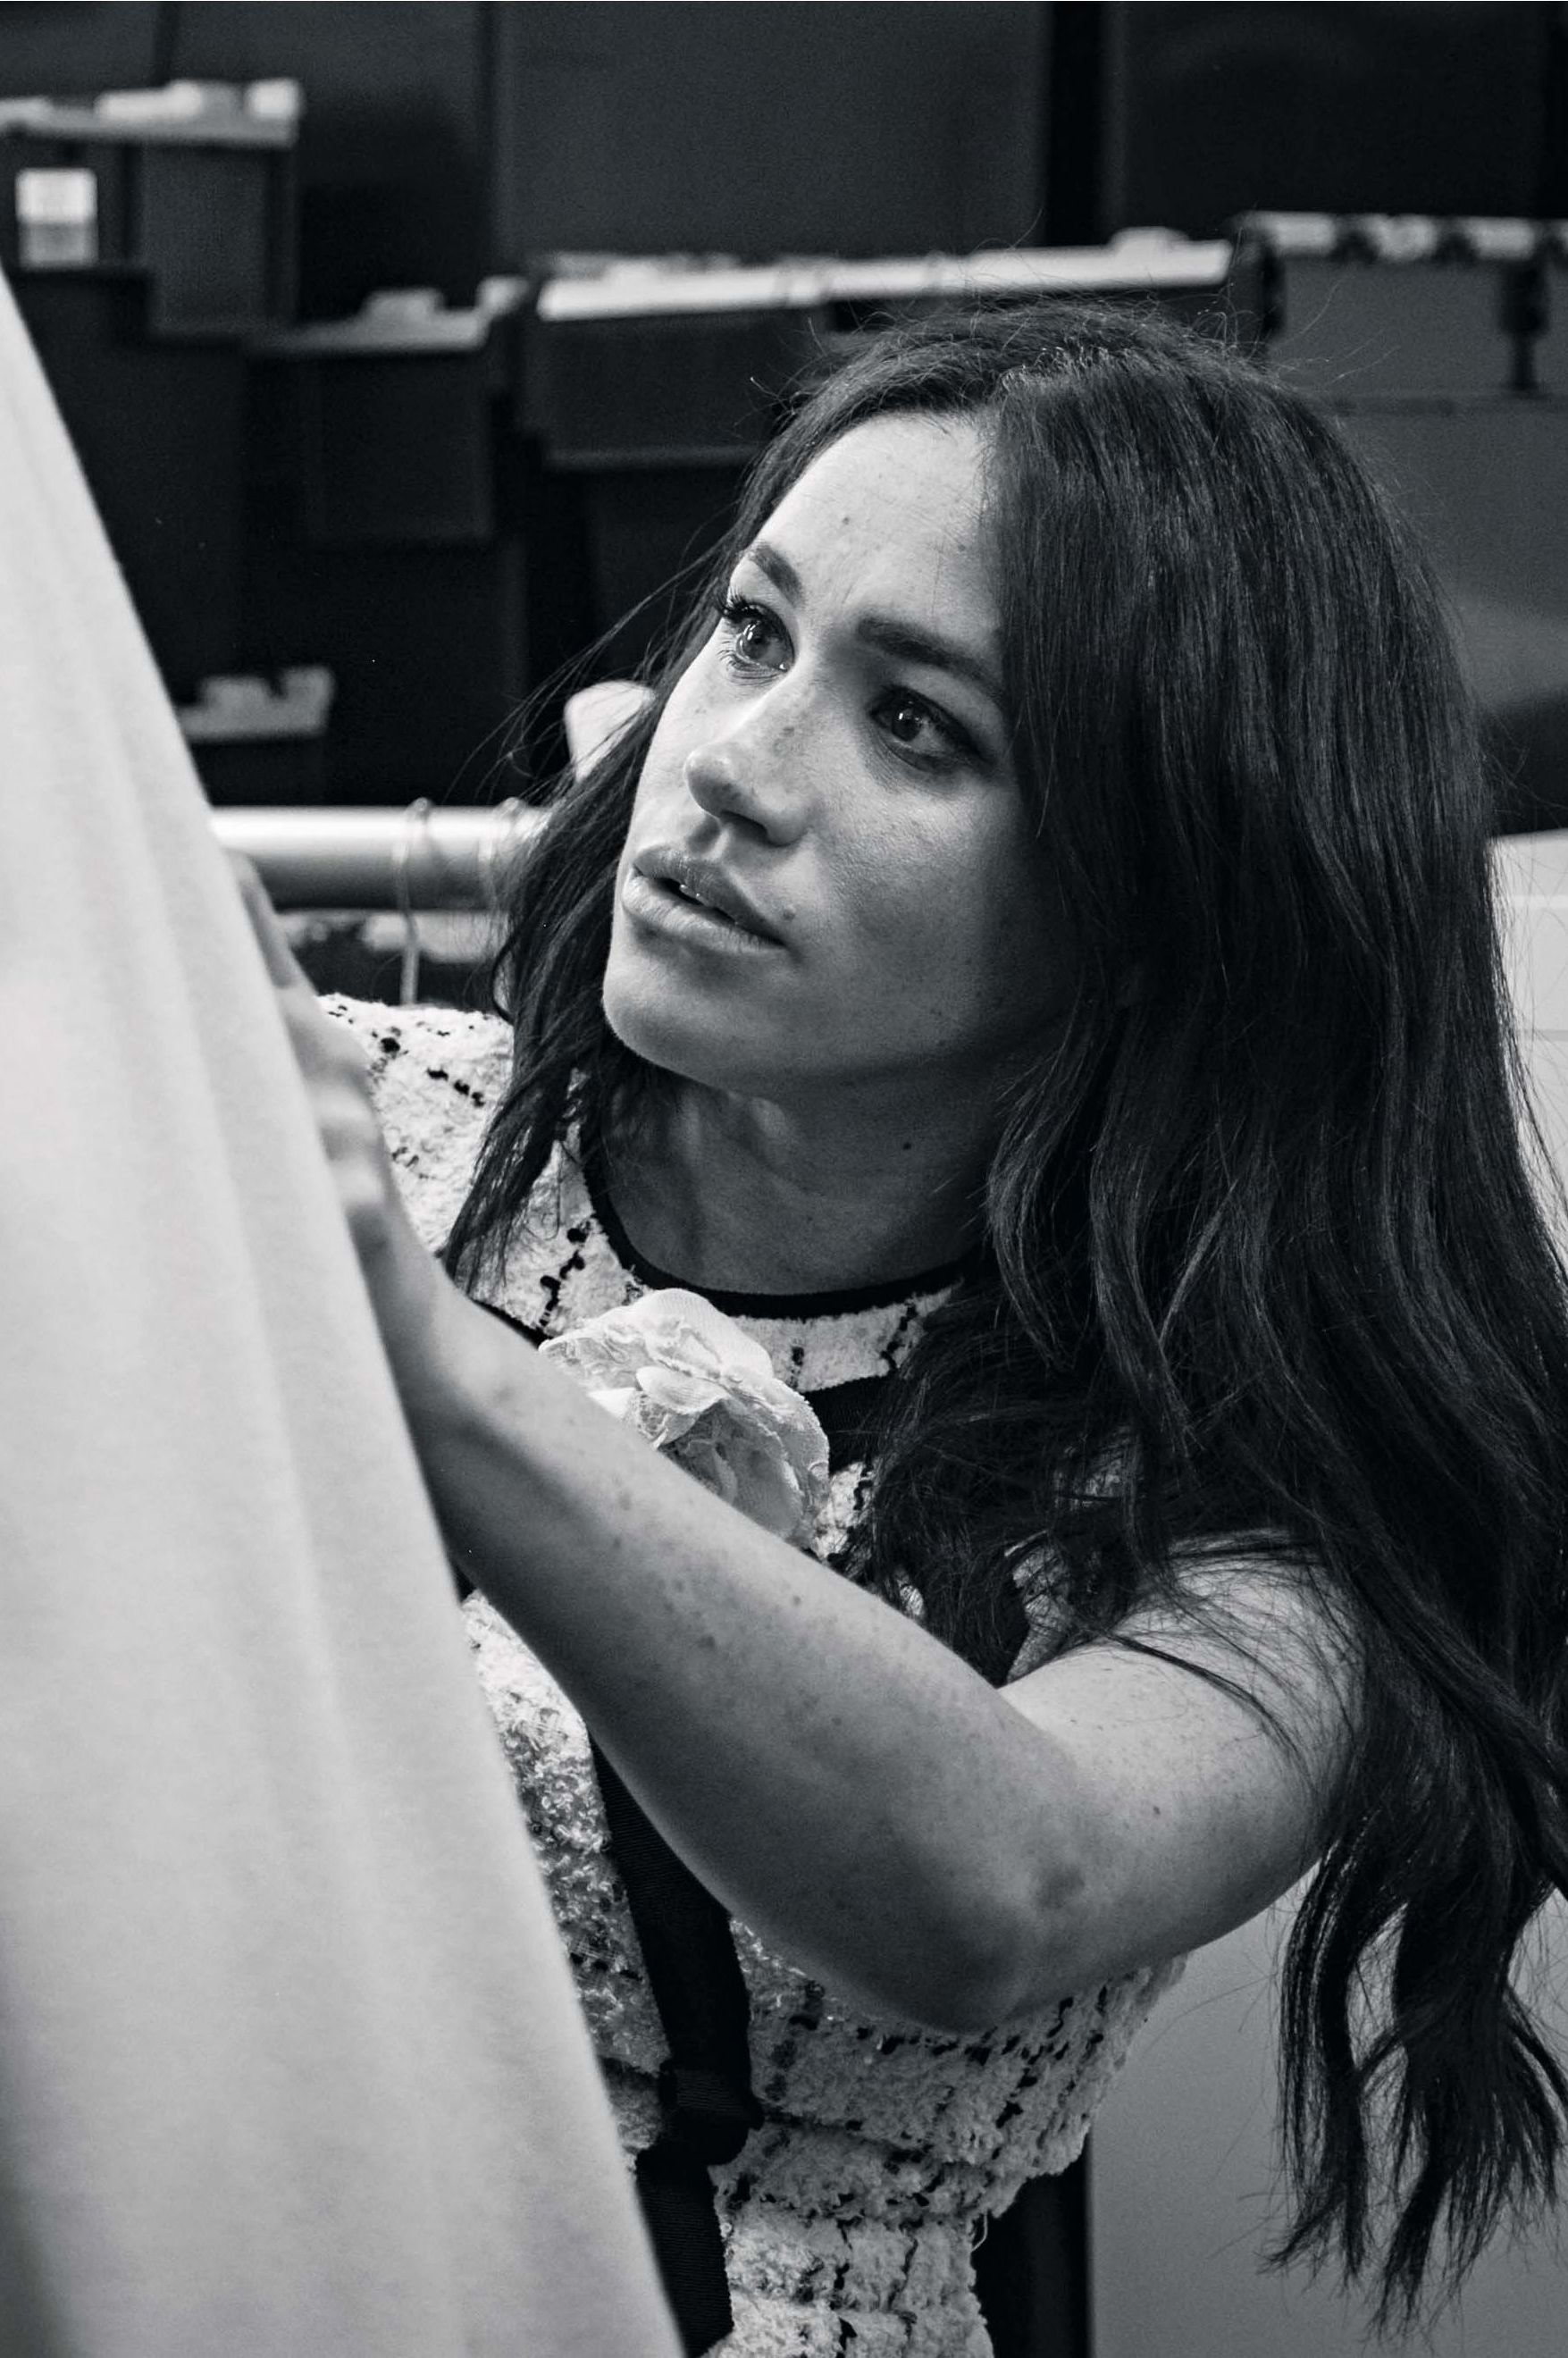 Combining her passion for fashion and philanthropy, Meghan Markle has created a capsule workwear collection in aid of charity Smart Works.